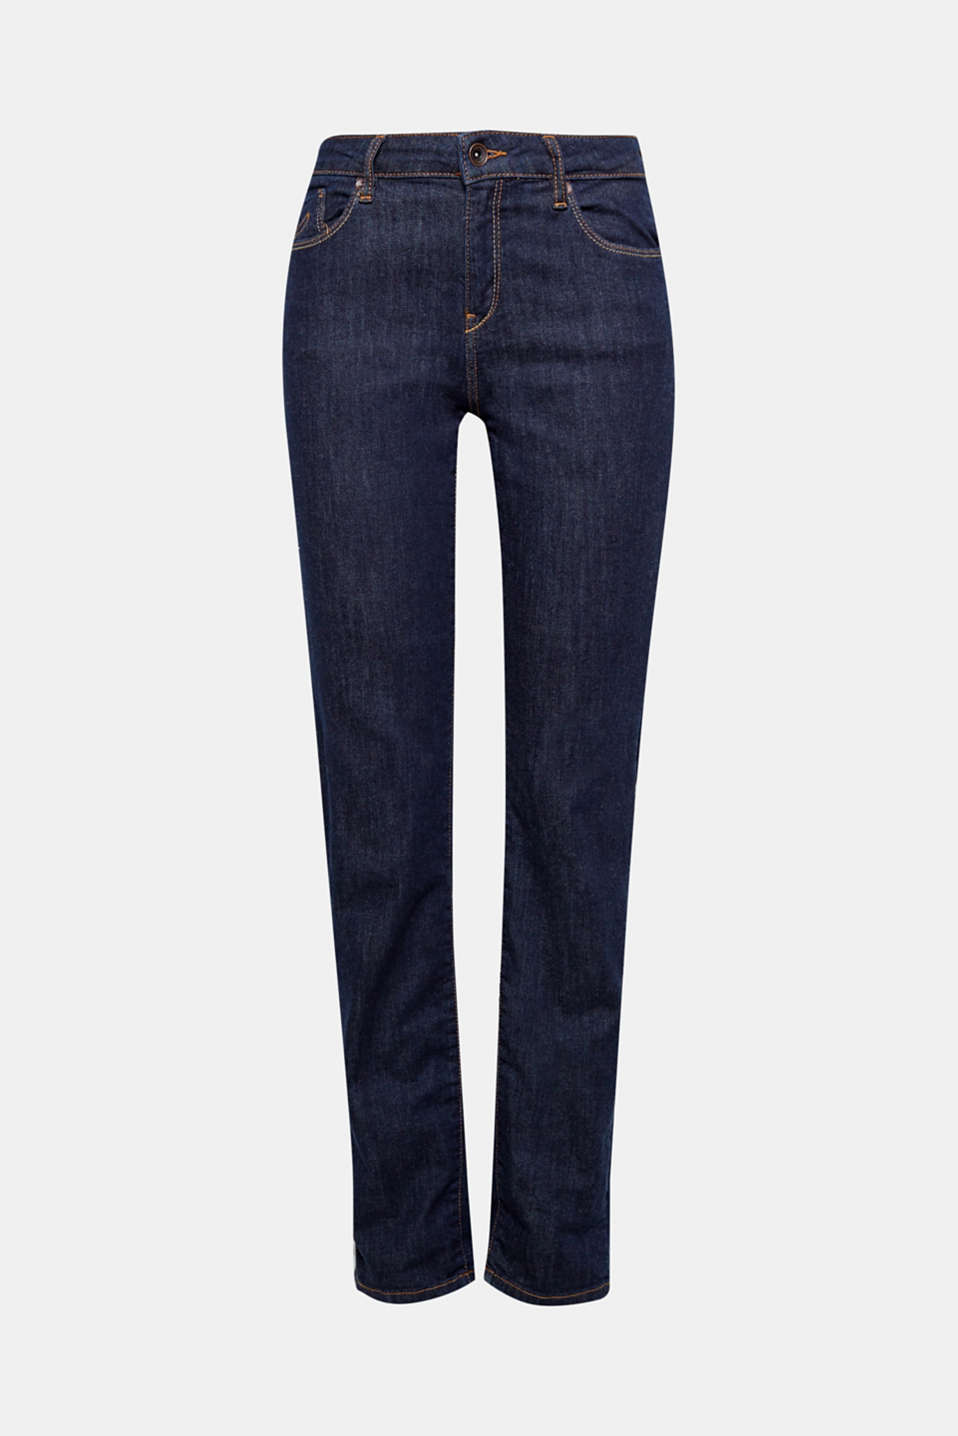 These straight cut stretch jeans made of dark denim in a classic five-pocket design are the perfect essential!